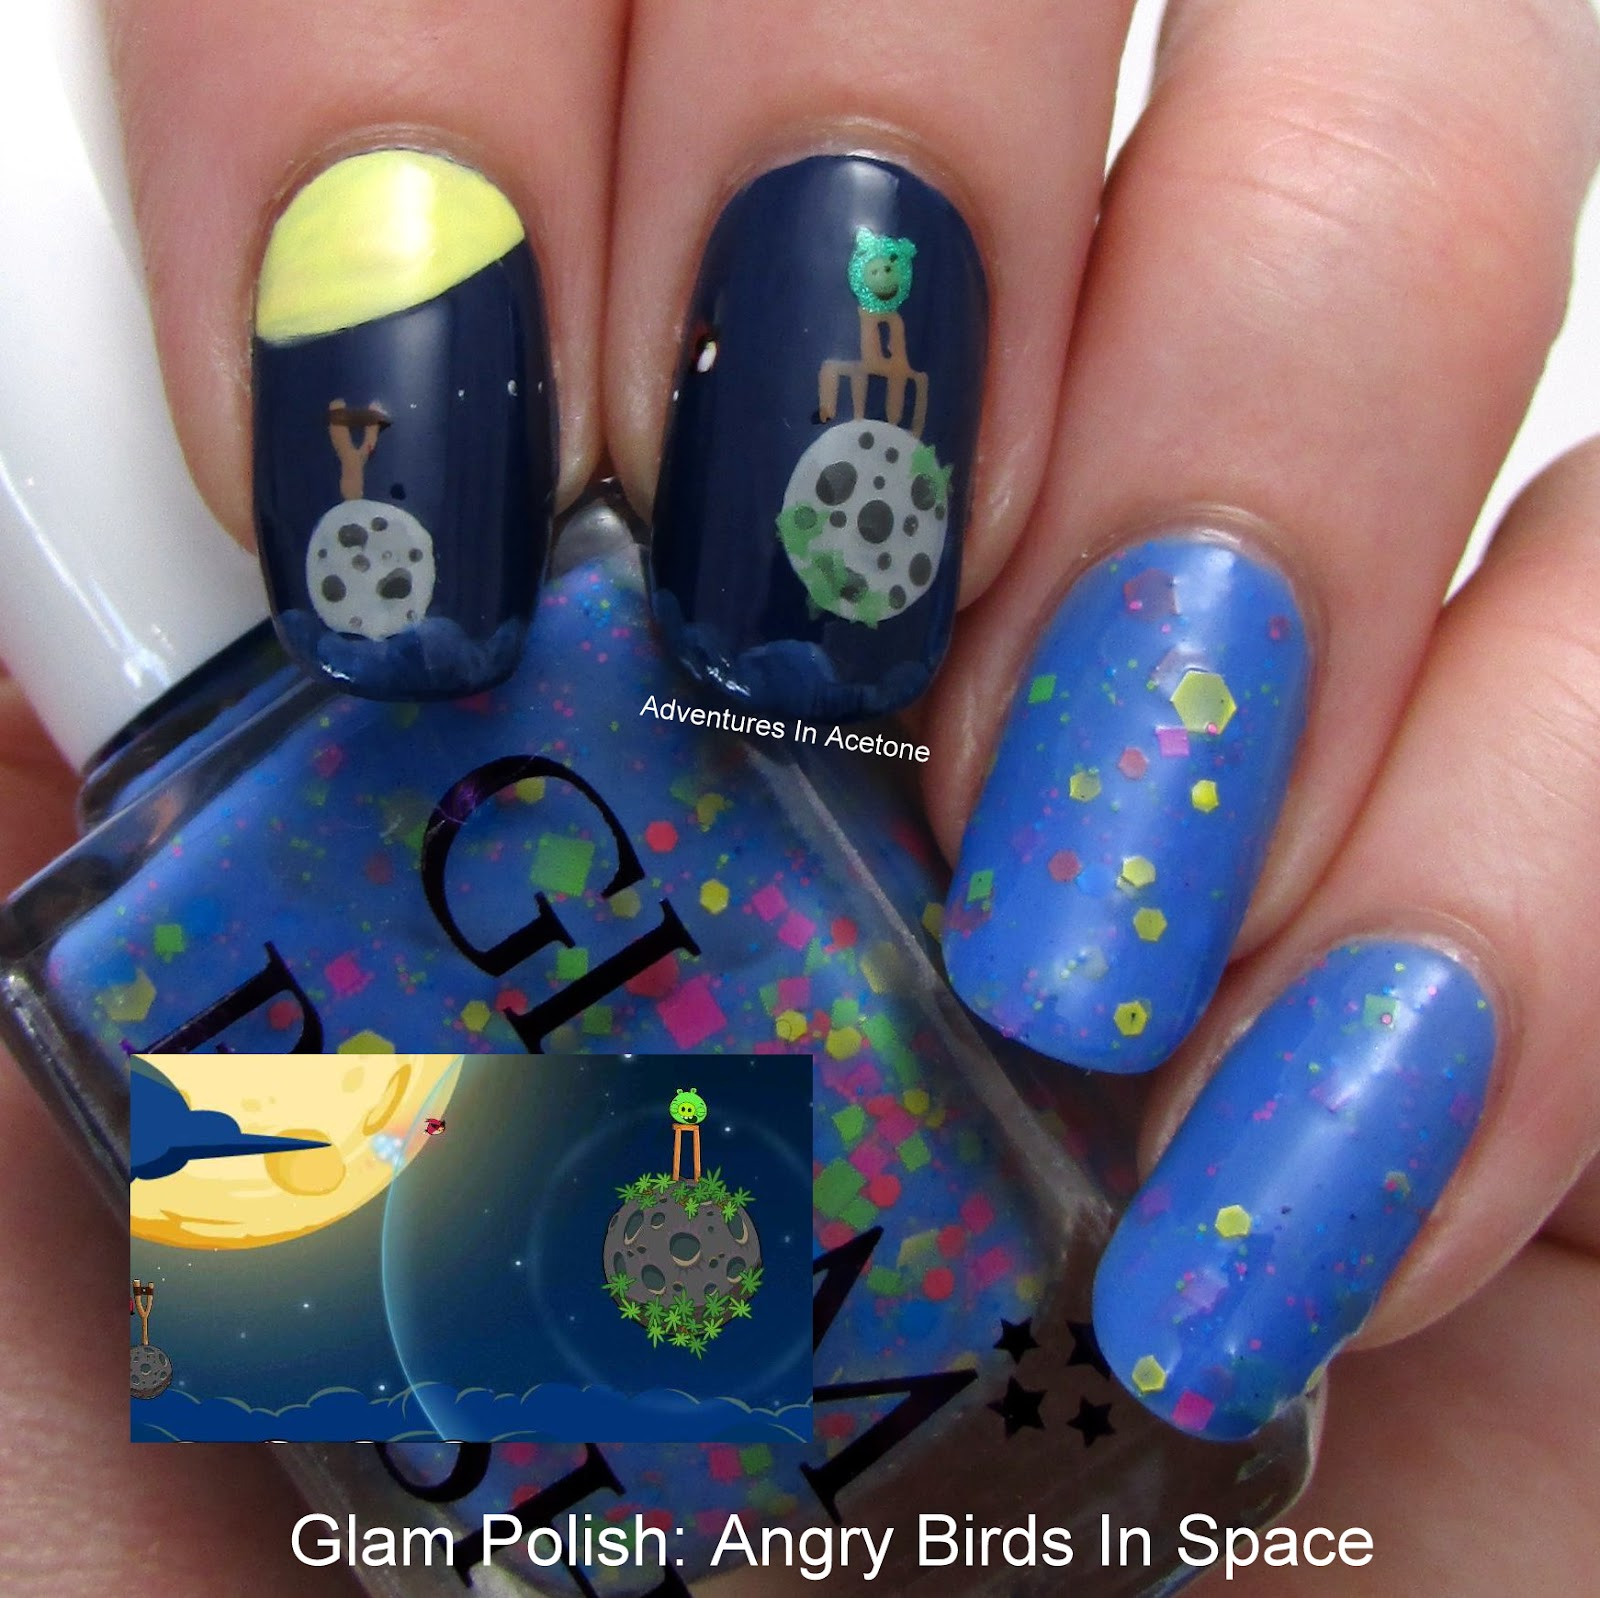 Glam Polish Angry Birds In Space + Nail Art!